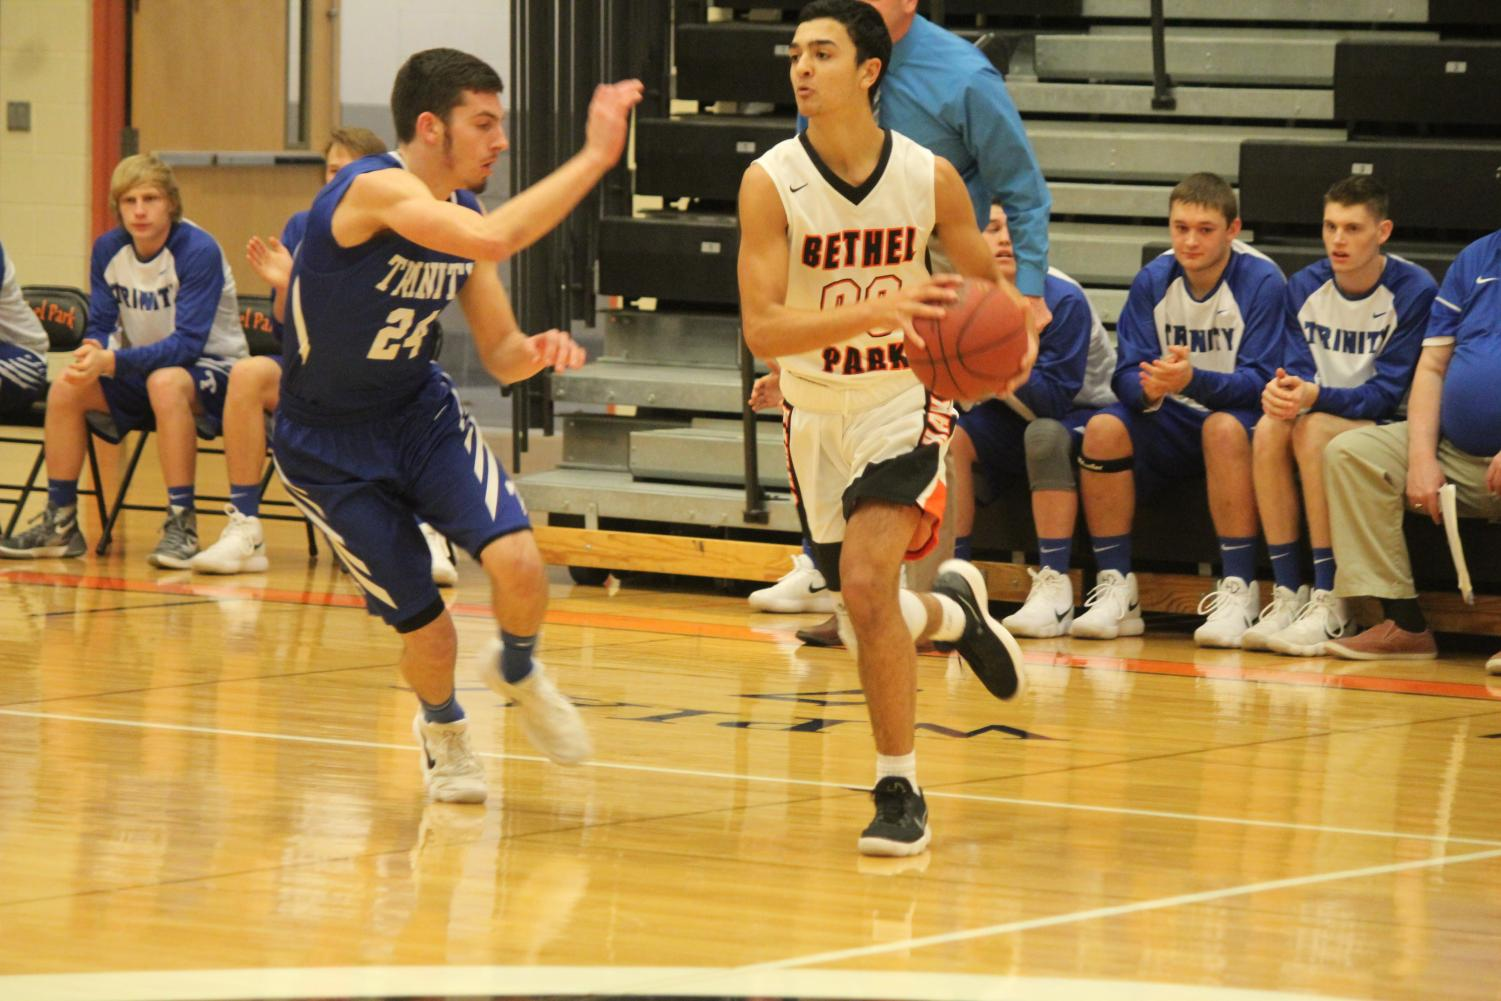 Nick Bomar looks to make a play in a game against Trinity on Tuesday, Dec. 12.